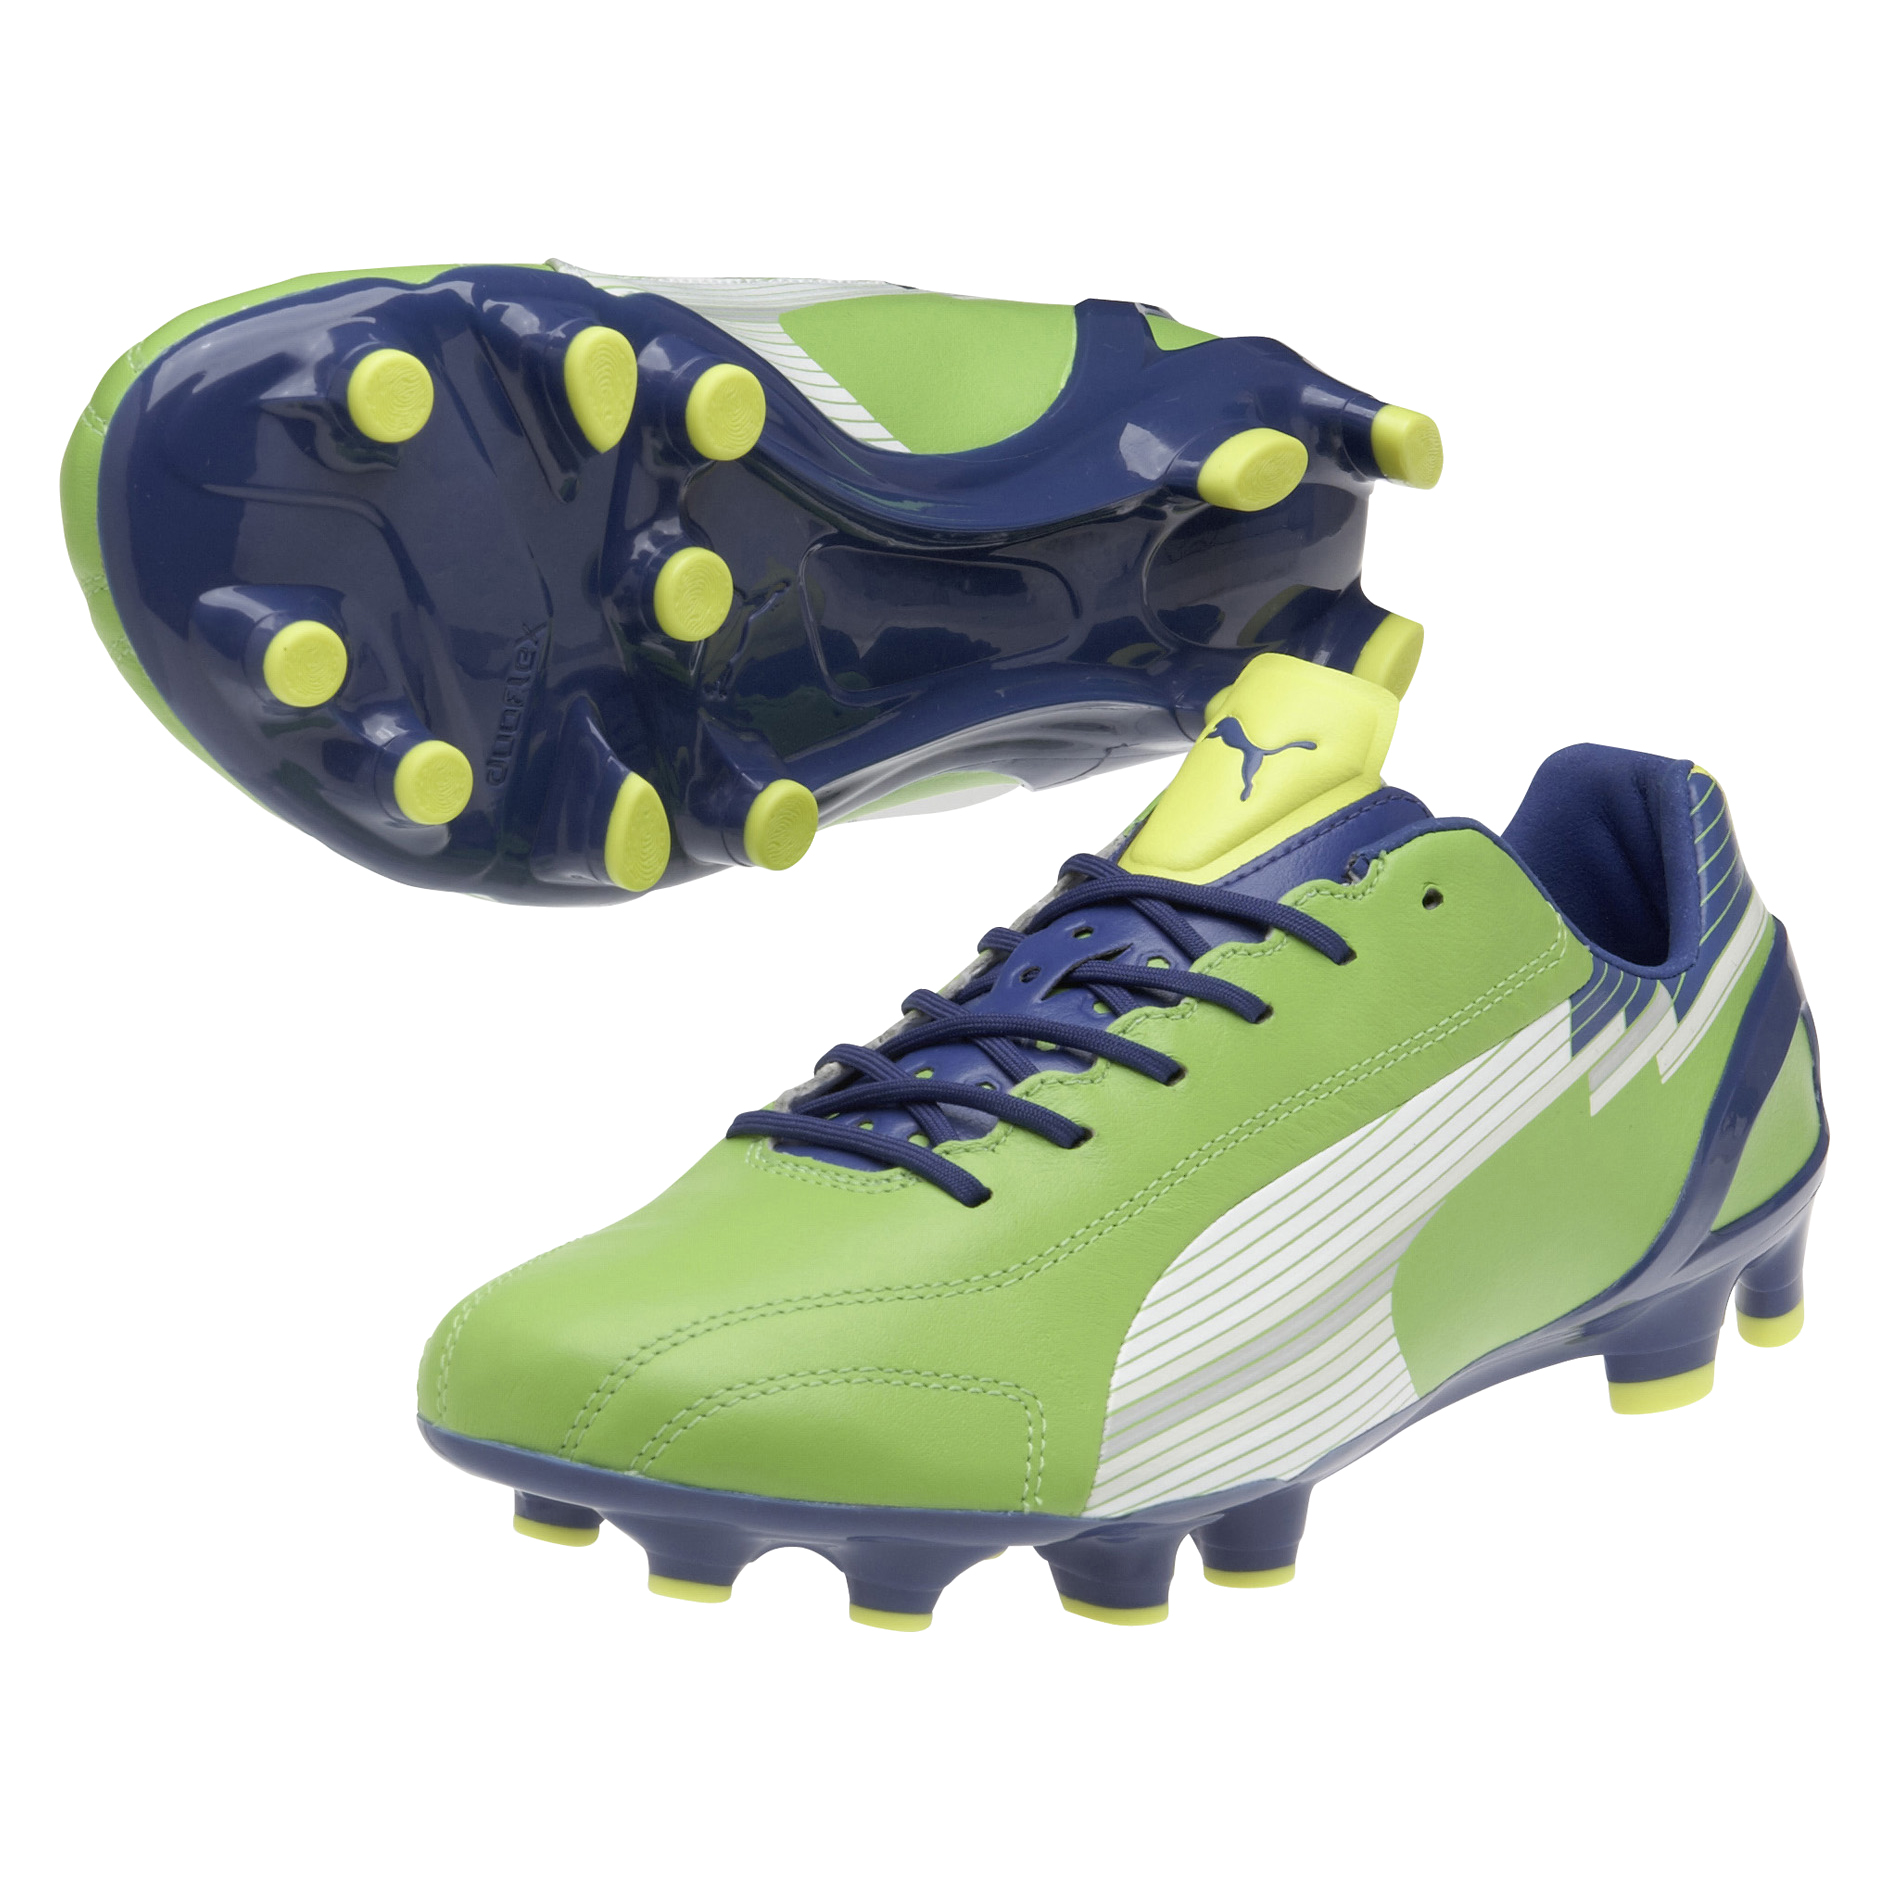 evoSPEED 1 K FG Jasmin Green/Monaco Blue/Fluo Yellow